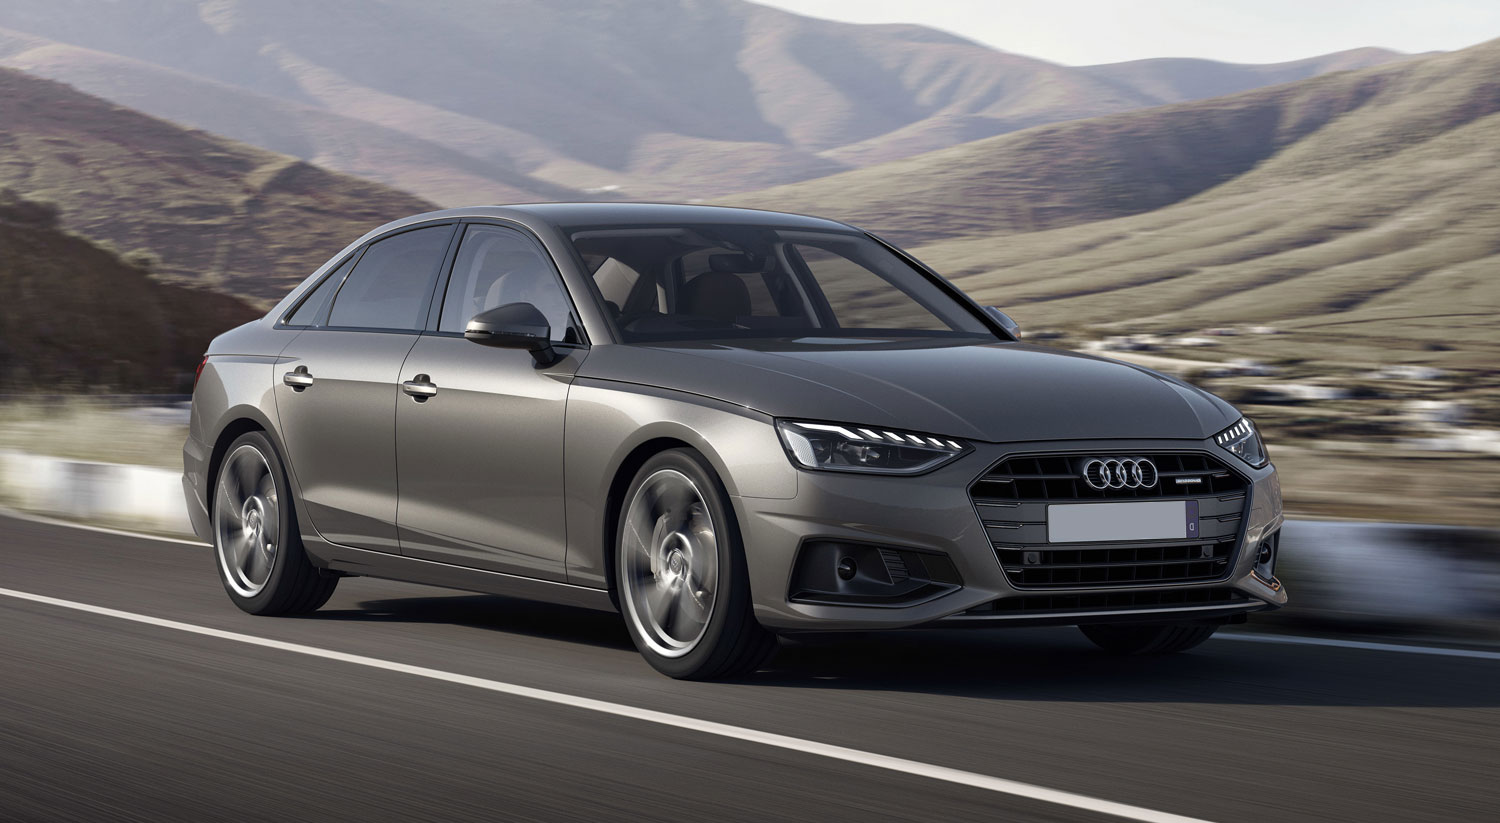 Audi A4 frontal